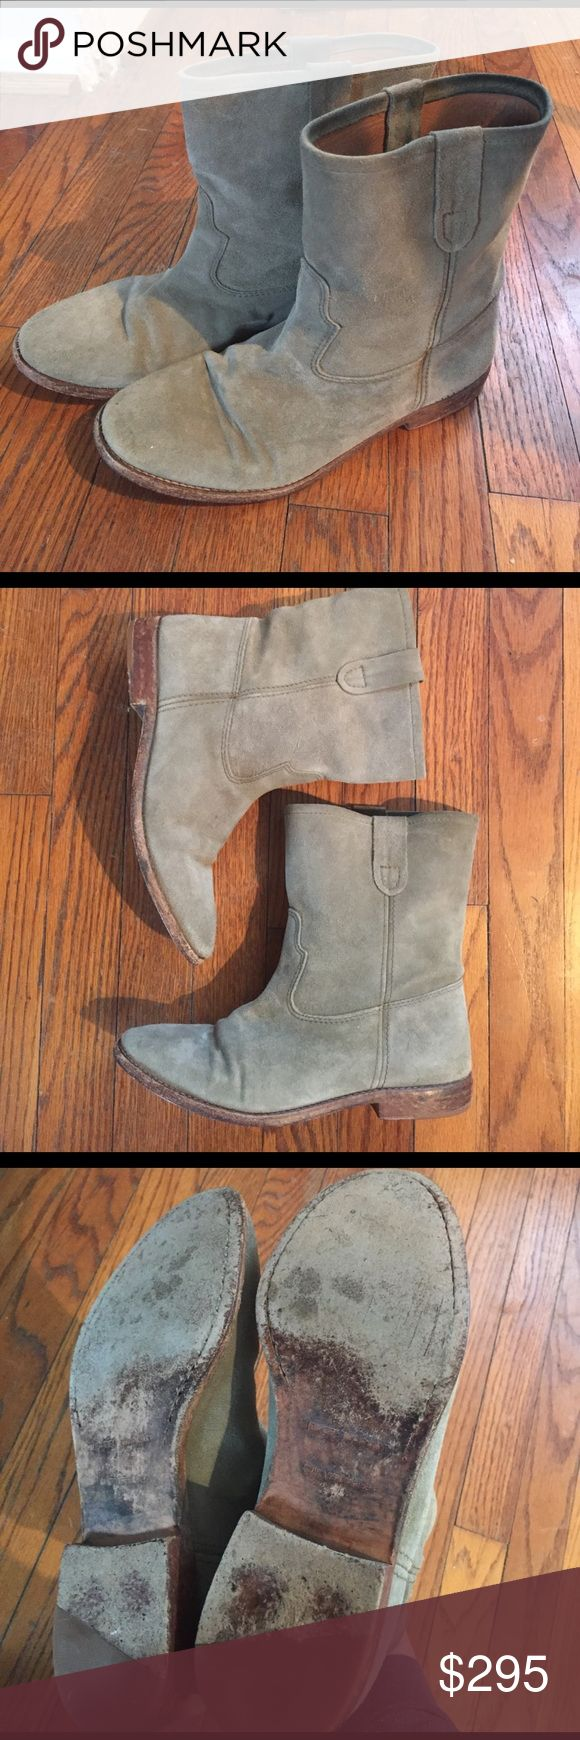 Isabel marant boots! Suede boots, sooo cute with skinny jeans or dresses! A great neutral color that goes with everything. There is some wear to the soles and suede could use a clean up but they have tons of life left in them. Priced accordingly. Size 38 Isabel Marant Shoes Ankle Boots & Booties